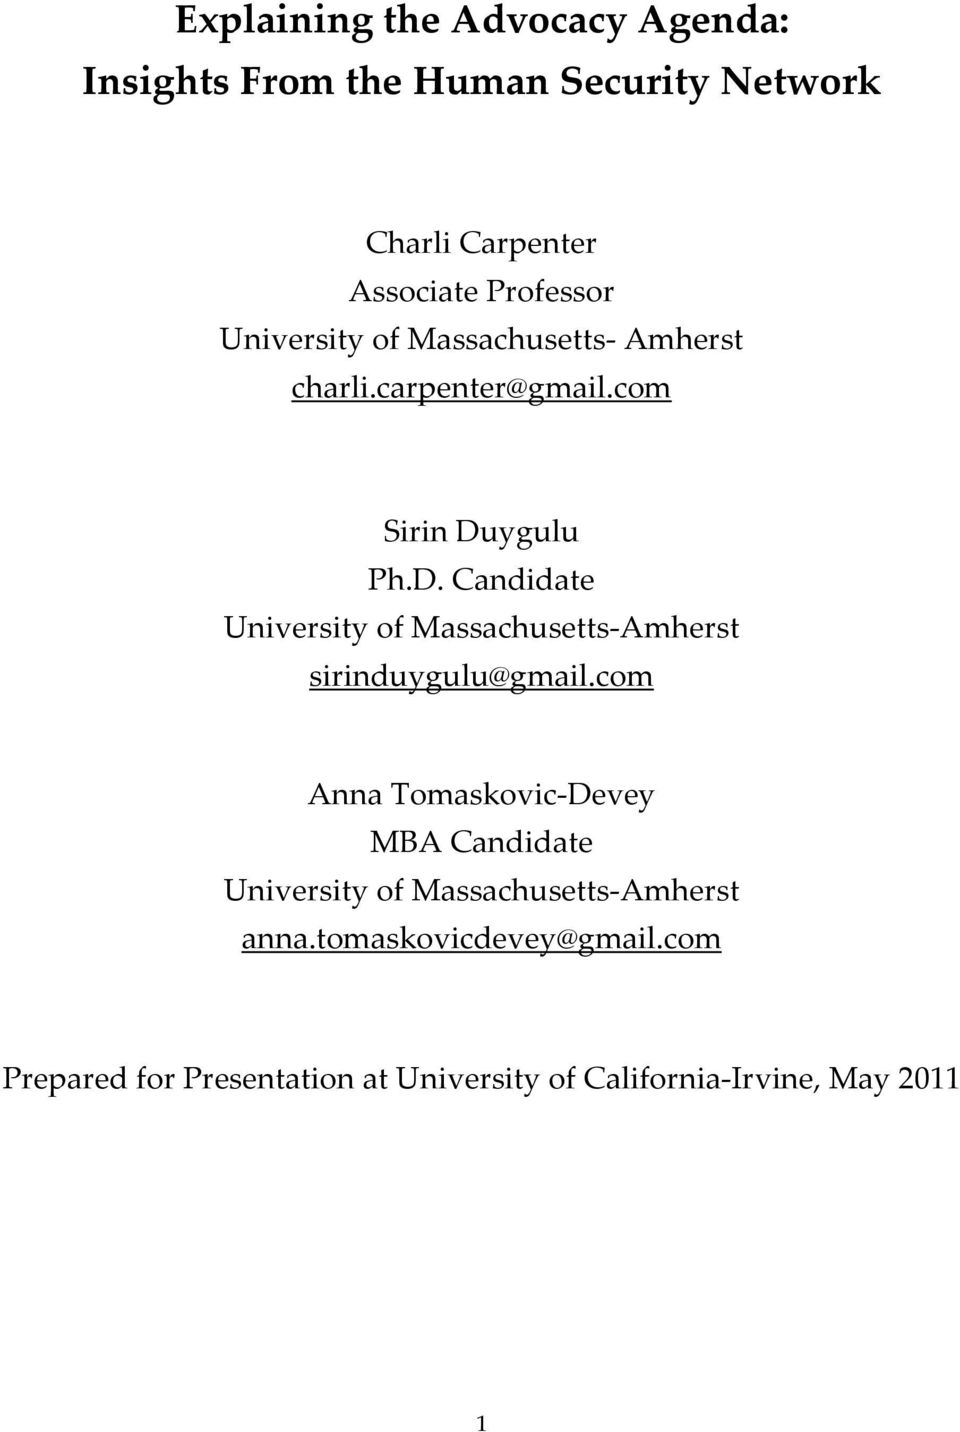 ygulu Ph.D. Candidate University of Massachusetts Amherst sirinduygulu@gmail.